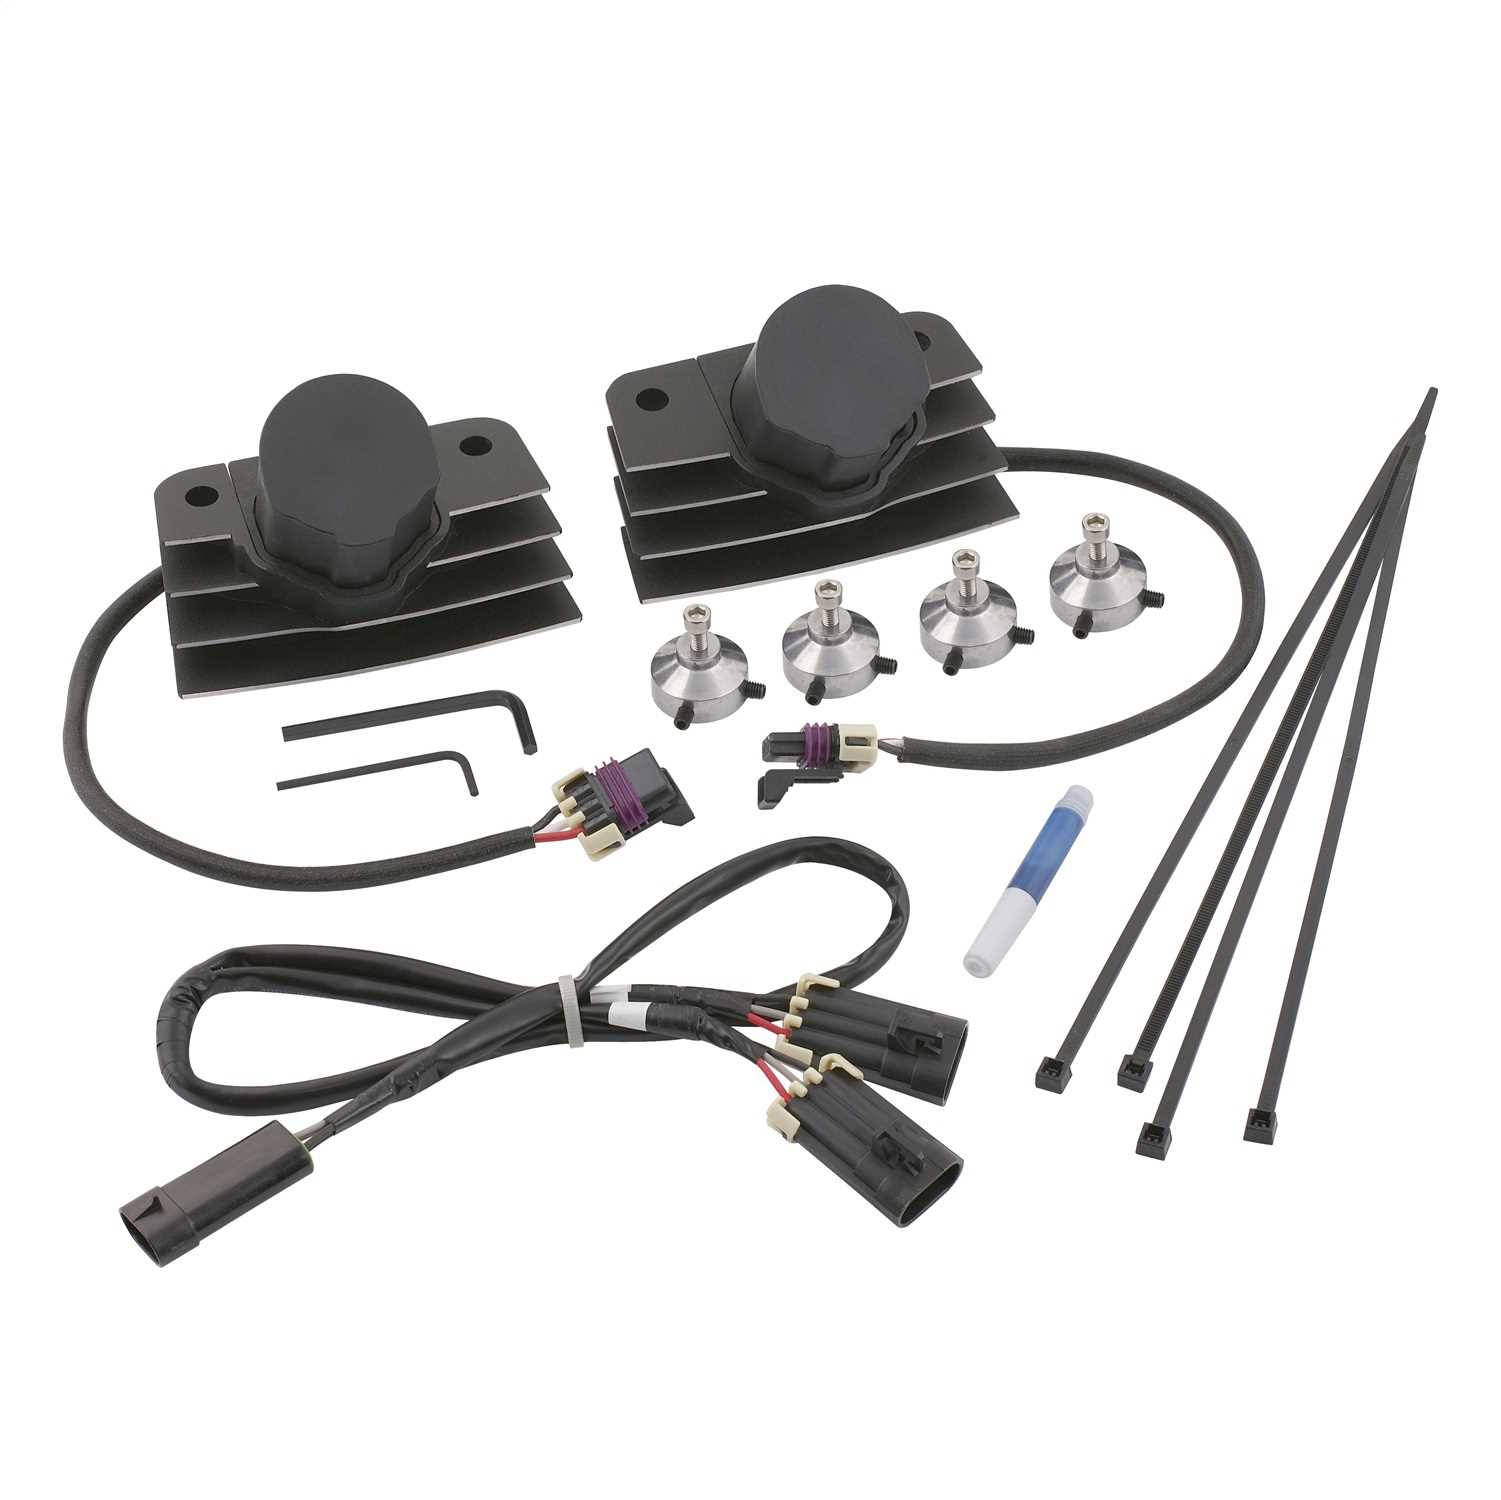 Surprising Stealth Supercoil Motorcycle Direct Ignition Coil Kit Unique Auto Wiring Digital Resources Jonipongeslowmaporg